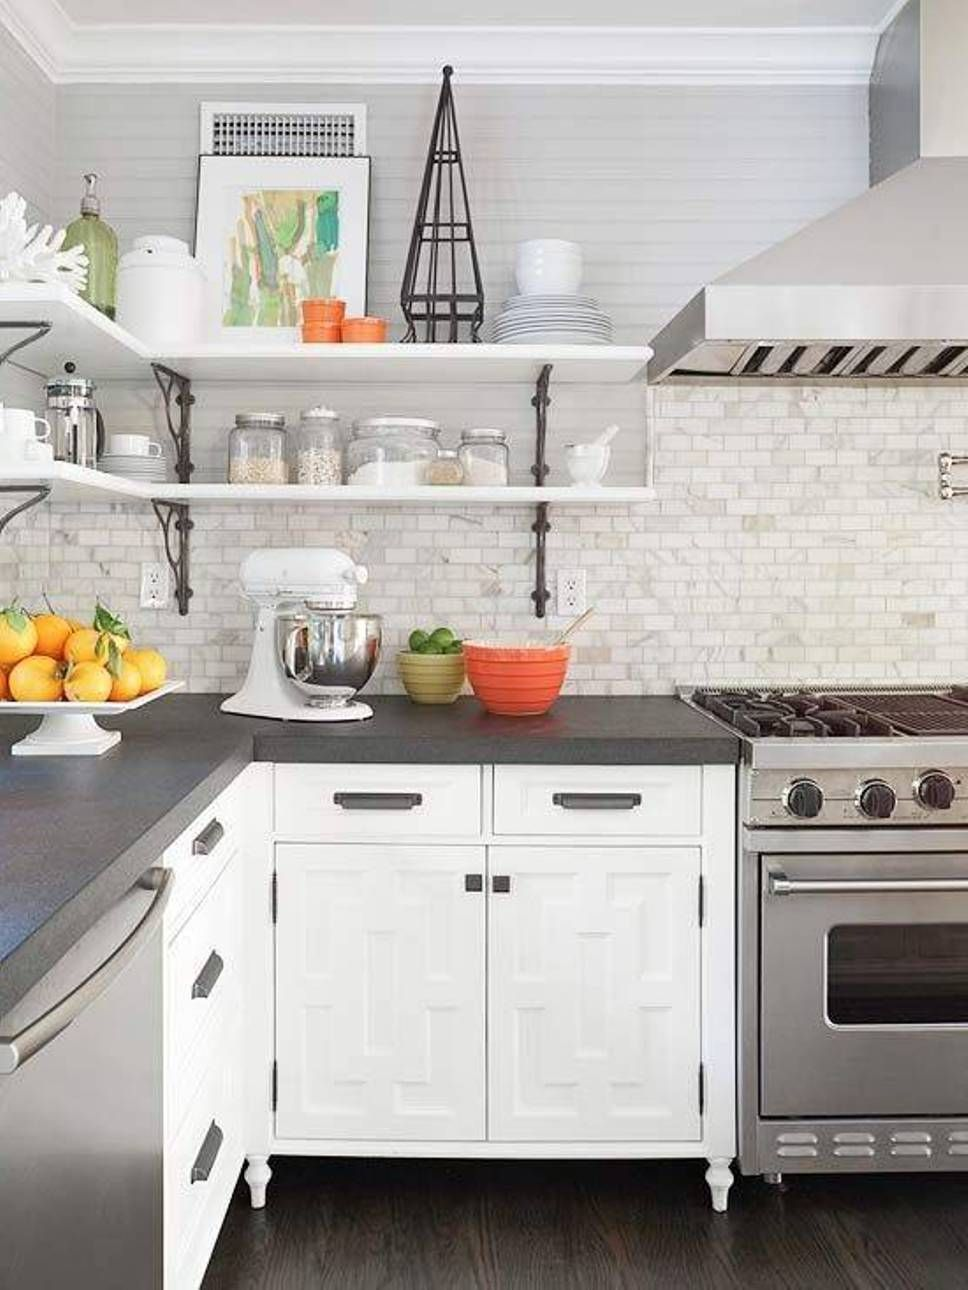 Pin By Susanne Mueller On Kitchen Grey Countertops Gray And